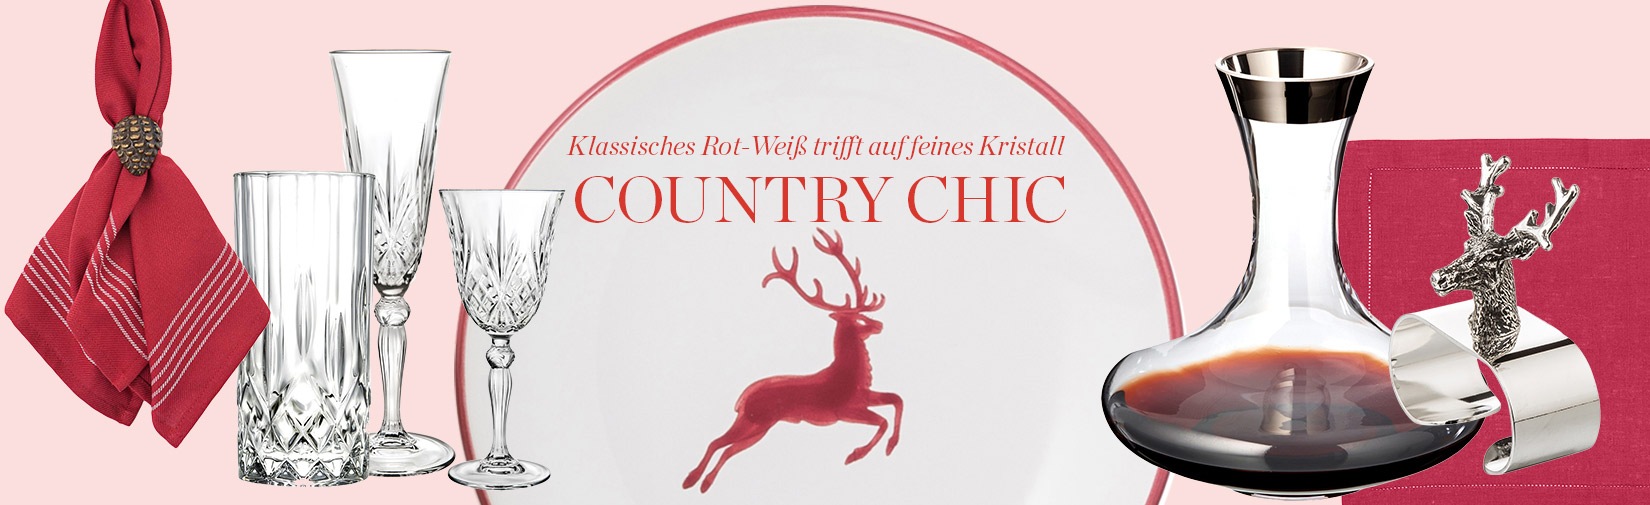 LP_Country-Chic_Desktop